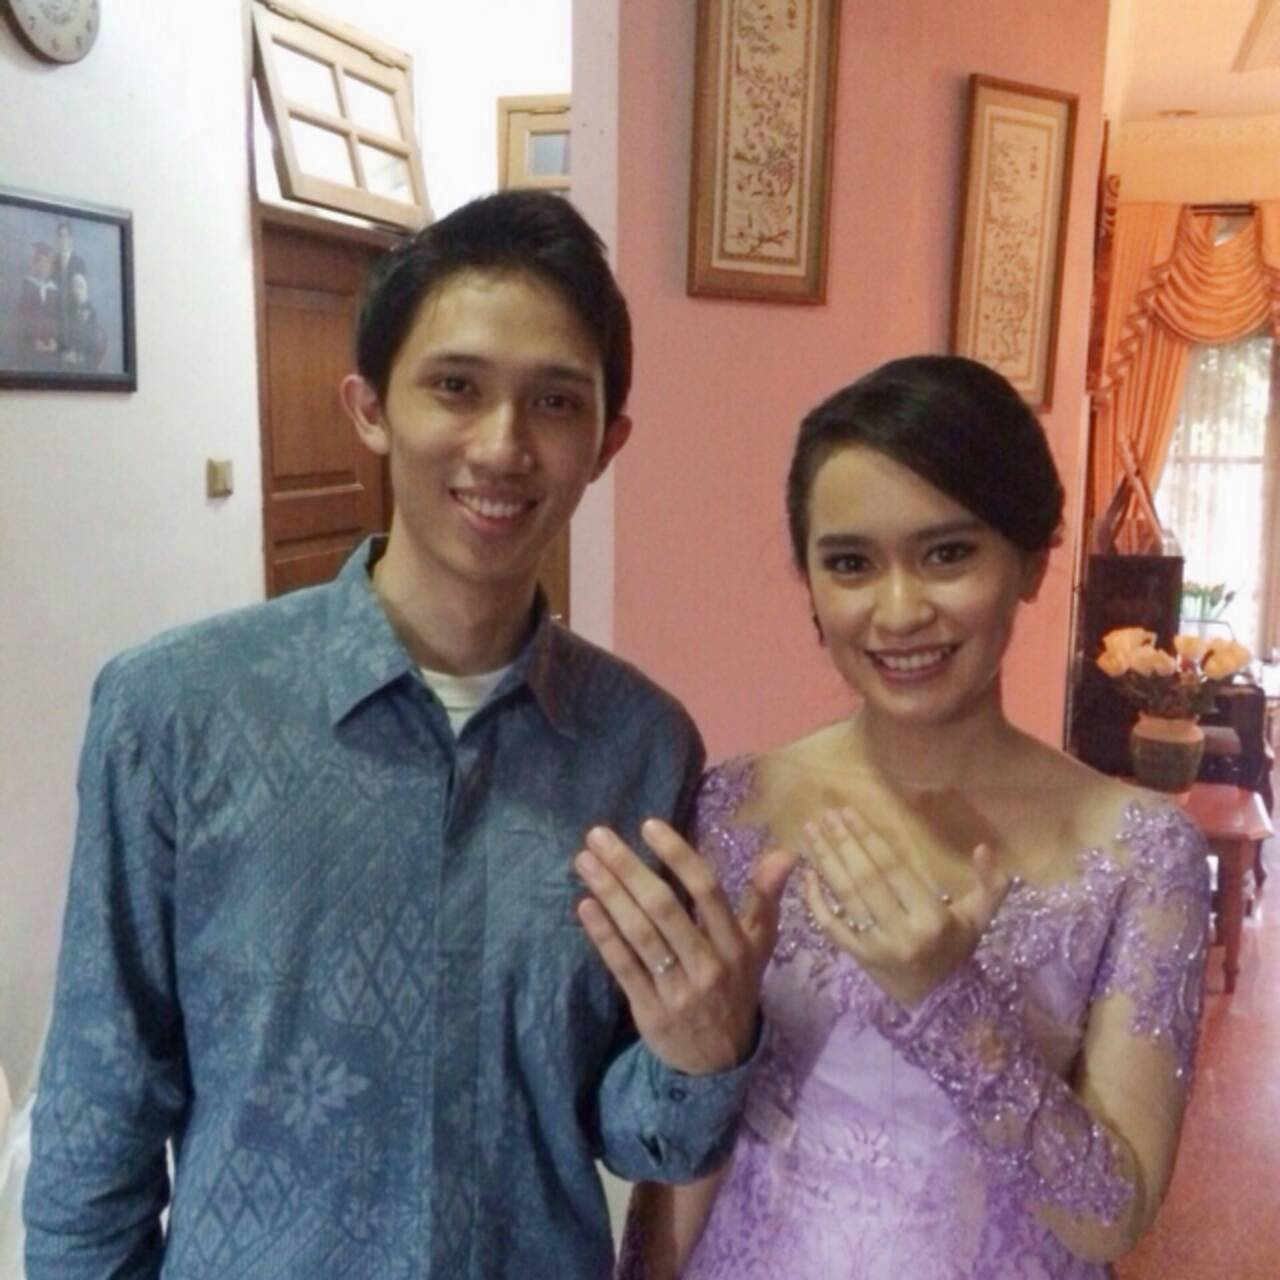 I received soo many compliments on the kebaya on my engagement day!